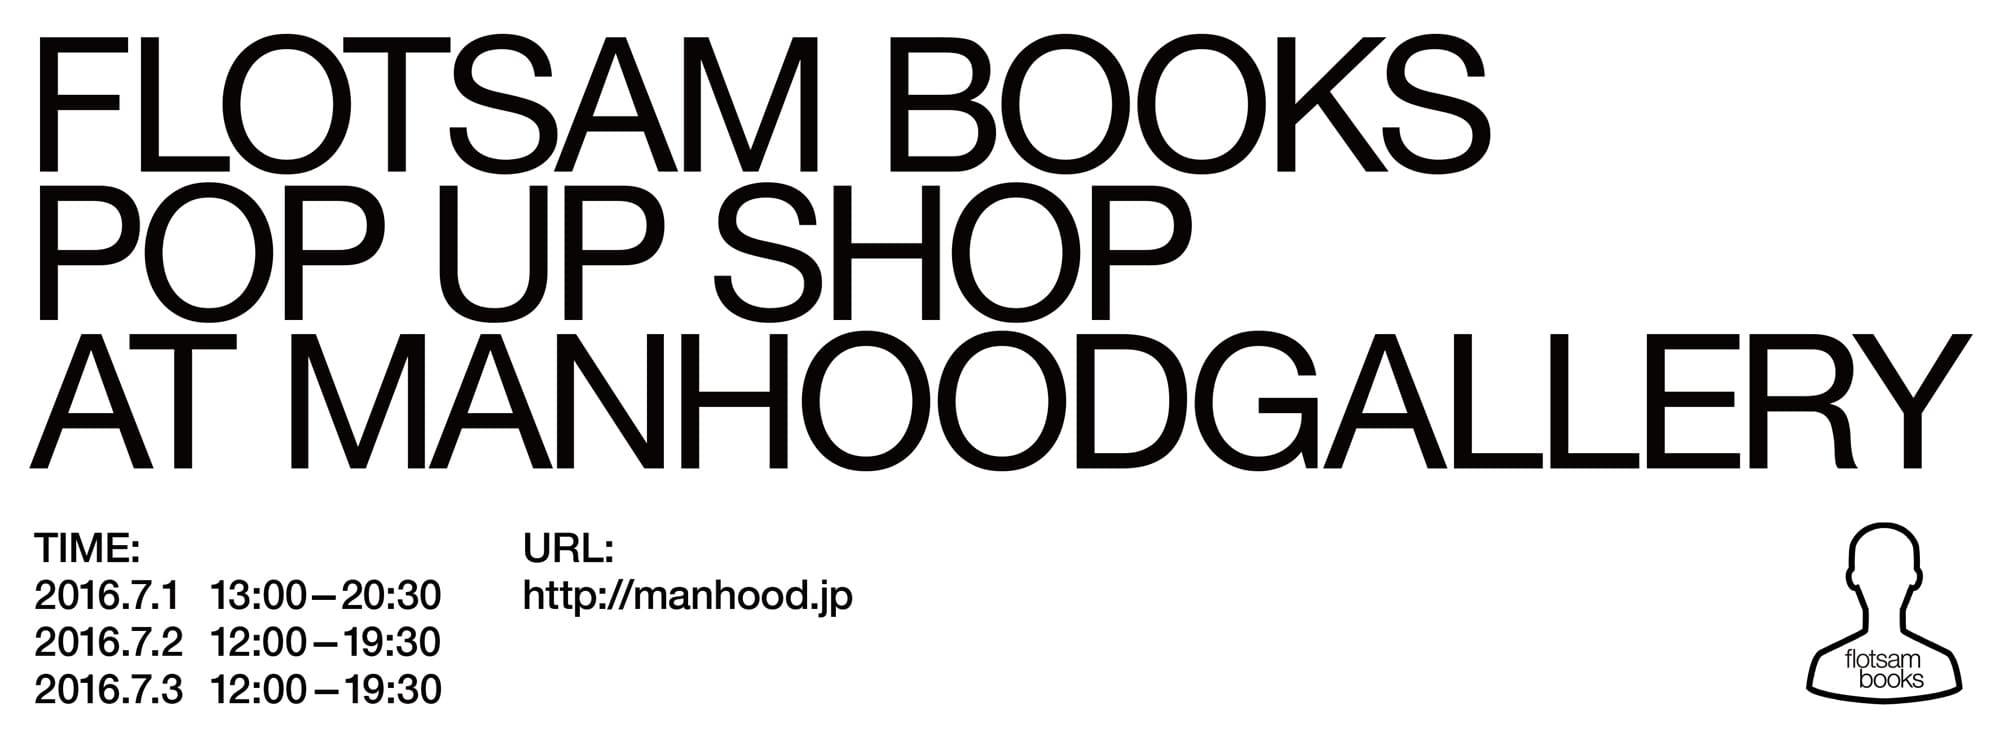 FLOTSAM BOOKS POP UP SHOP at MANHOOD GALLERY